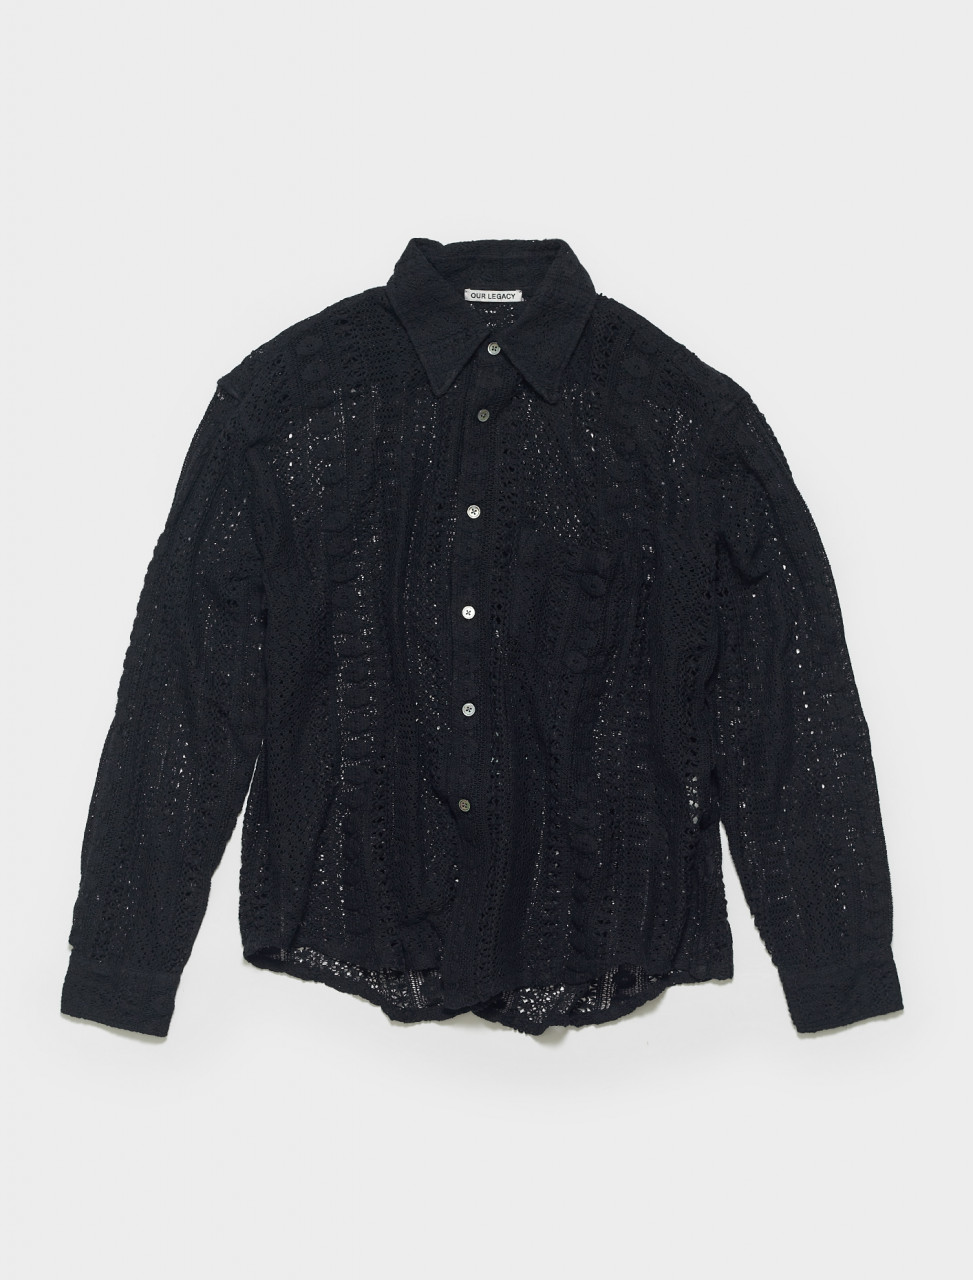 M2212CBC OUR LEGACY COCO SHIRT IN BLACK COTTON CROCHET